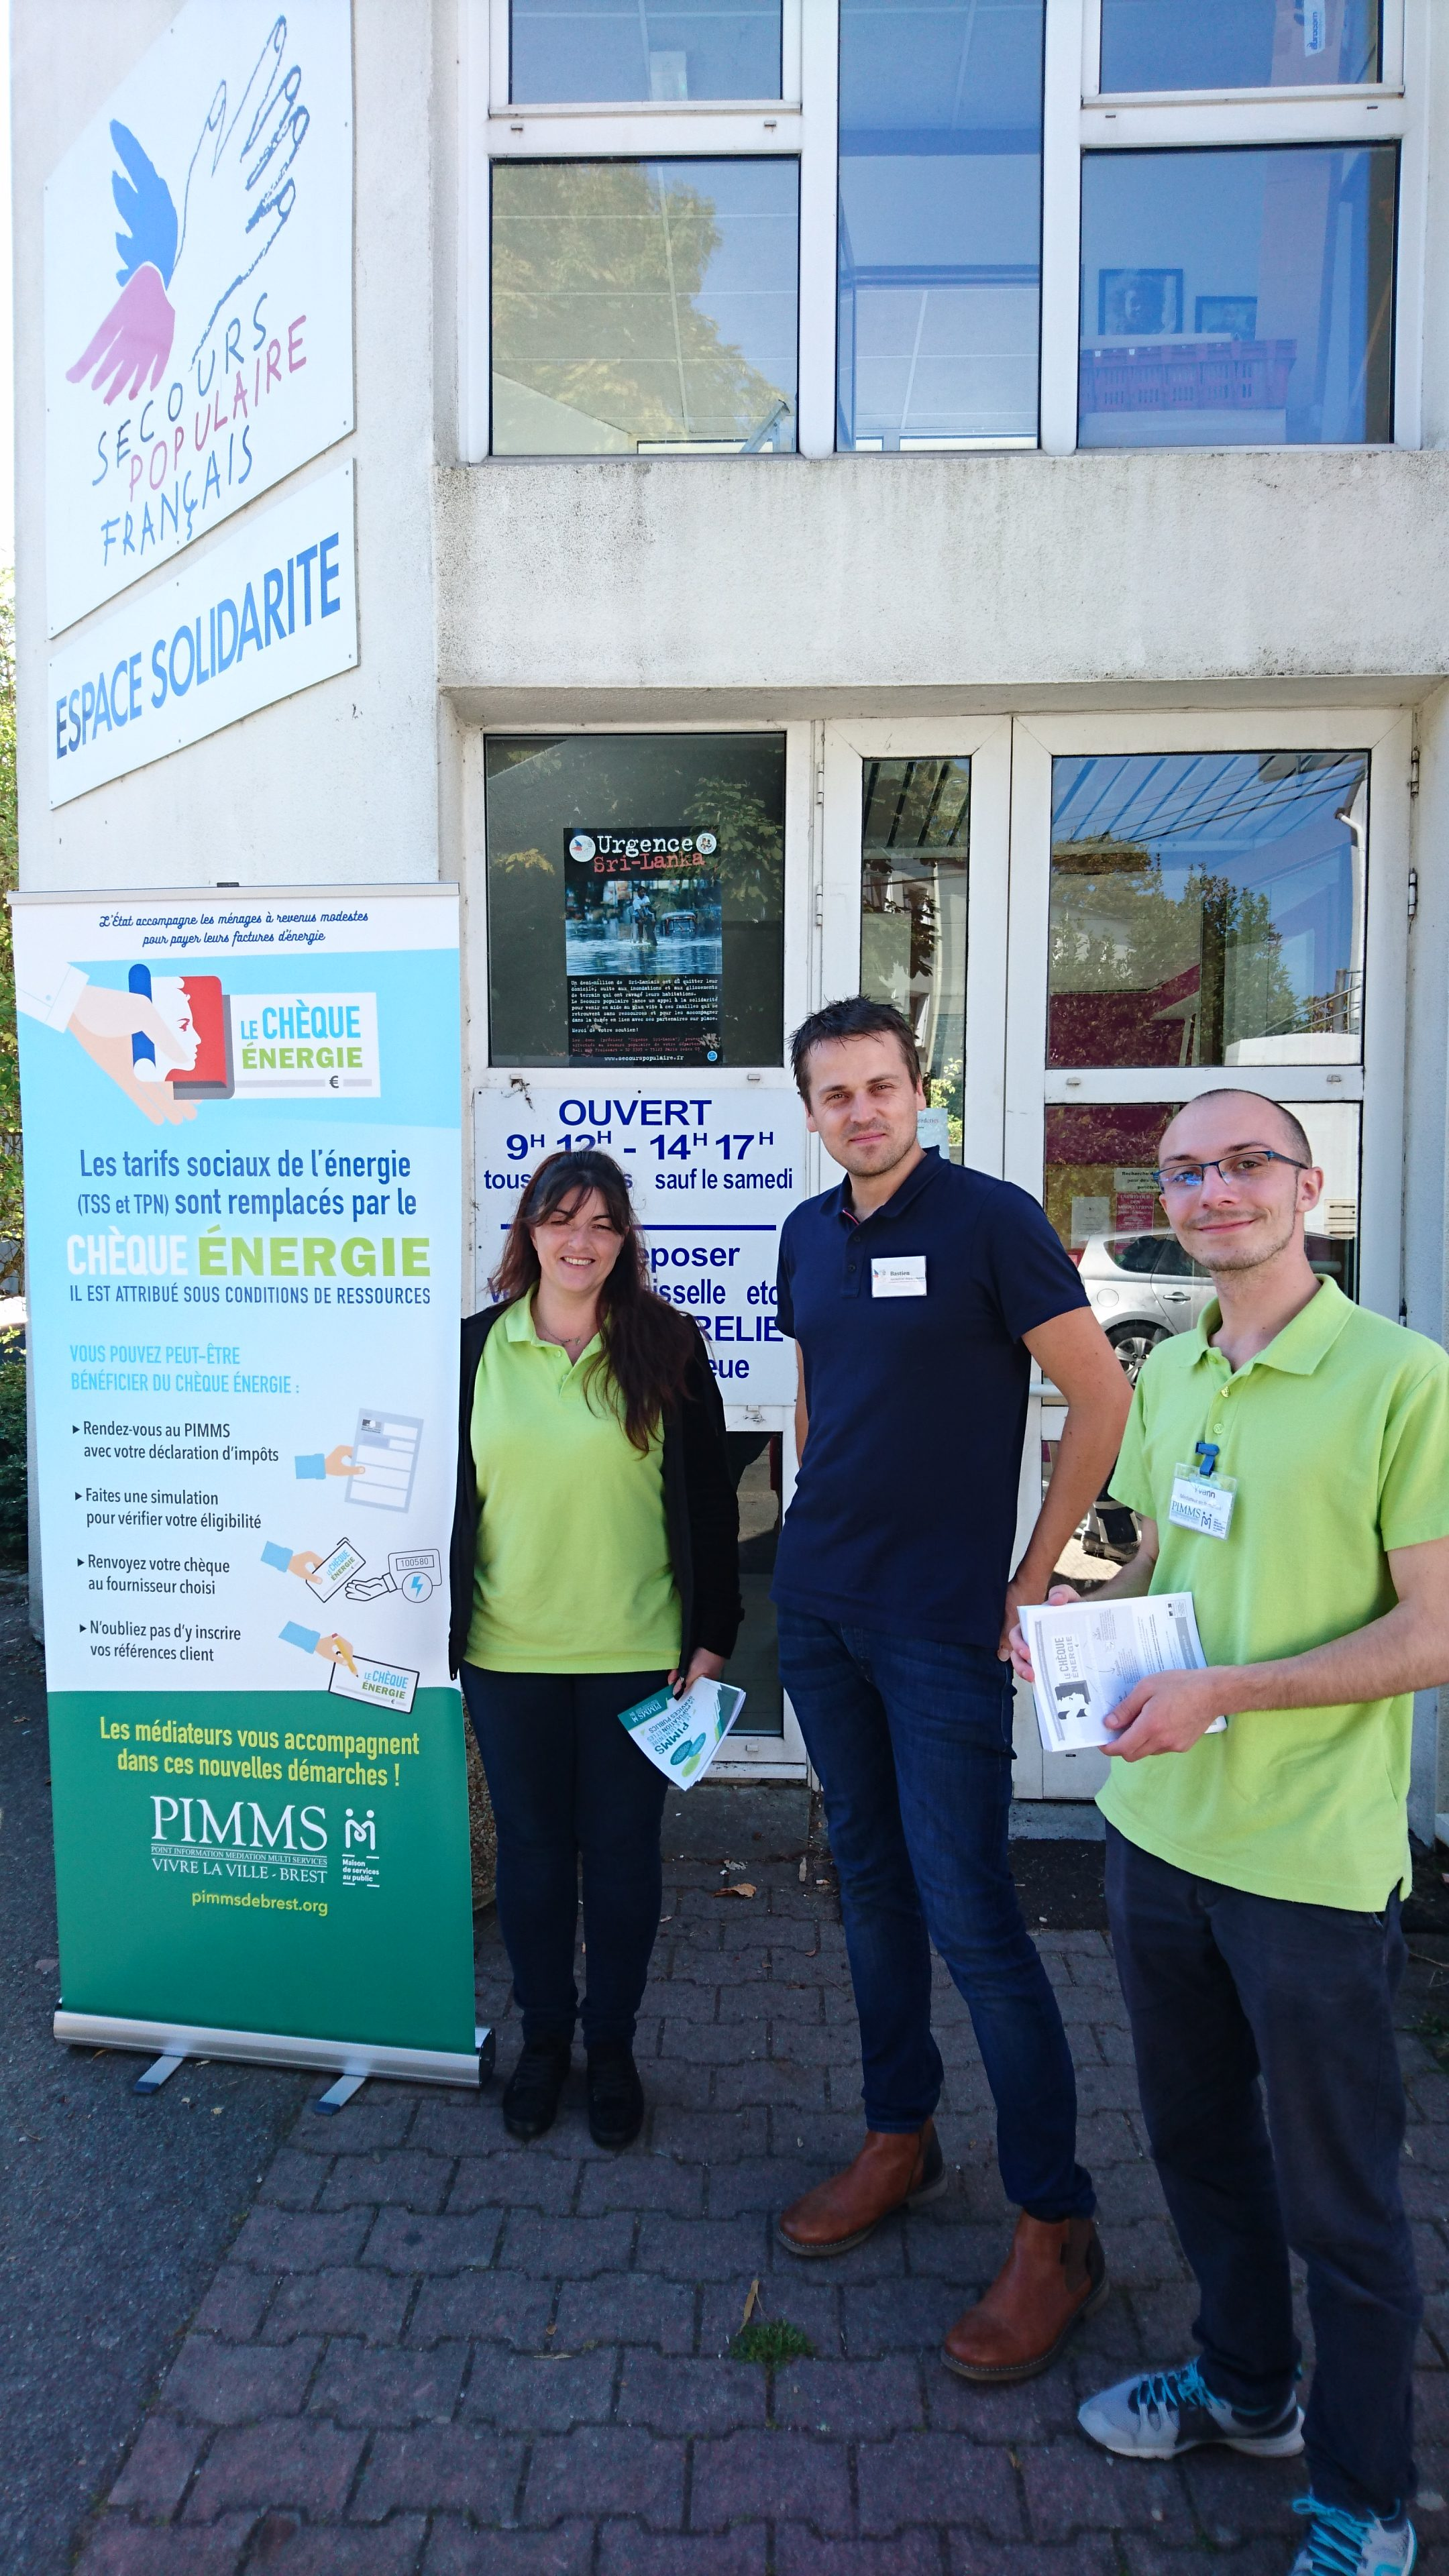 2018-09-27_cheque_energie_secourspop_1